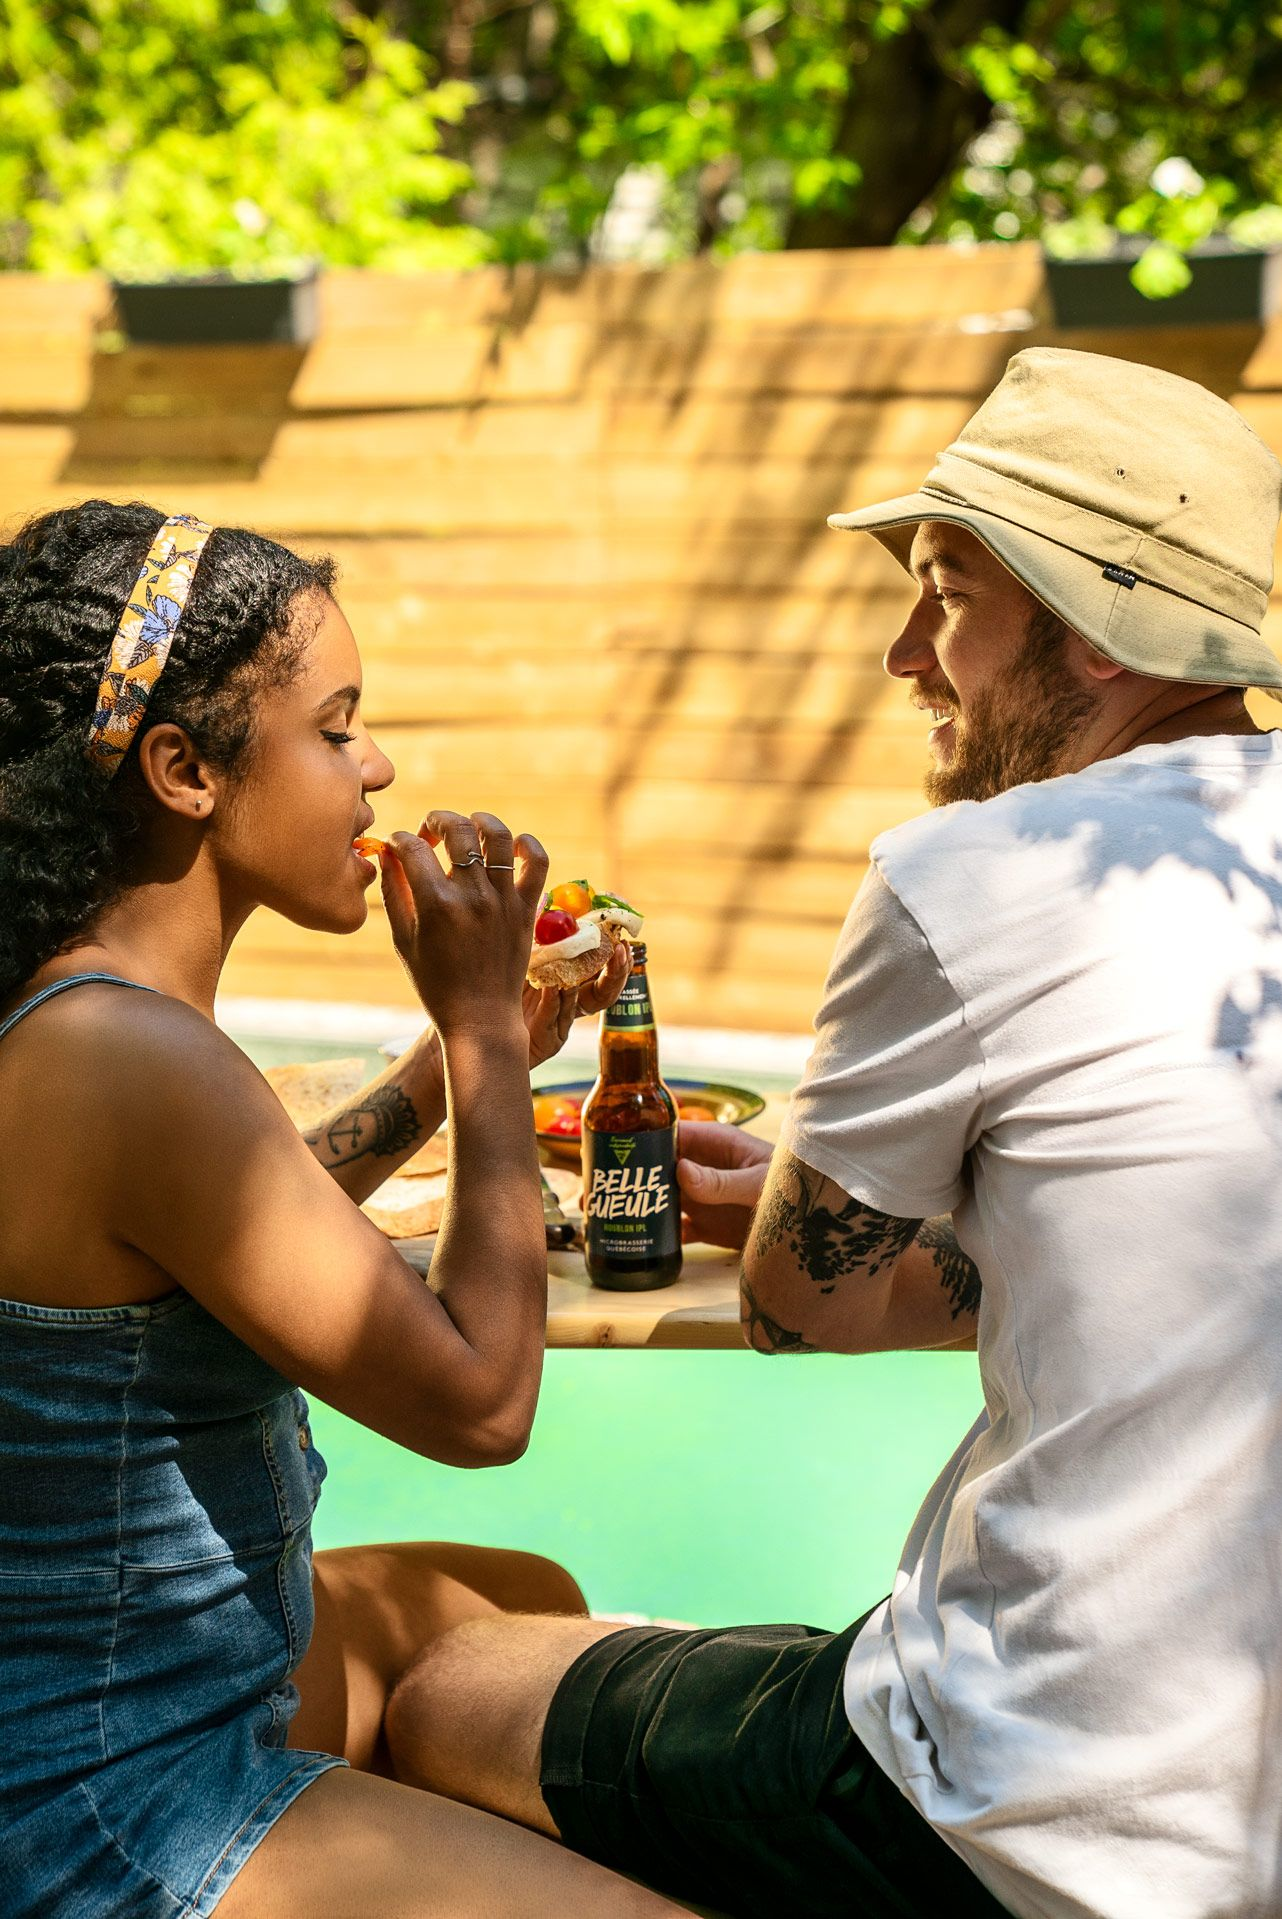 bearded man drinking beer wearing white shirt and beige bob hat and talking with woman sitting next to him wearing jeans overall and eating toast topped with mozzarella and small tomatoes with pool in the background photographed by Bruno Florin for Belle Gueule with Forsman & Bodenfors